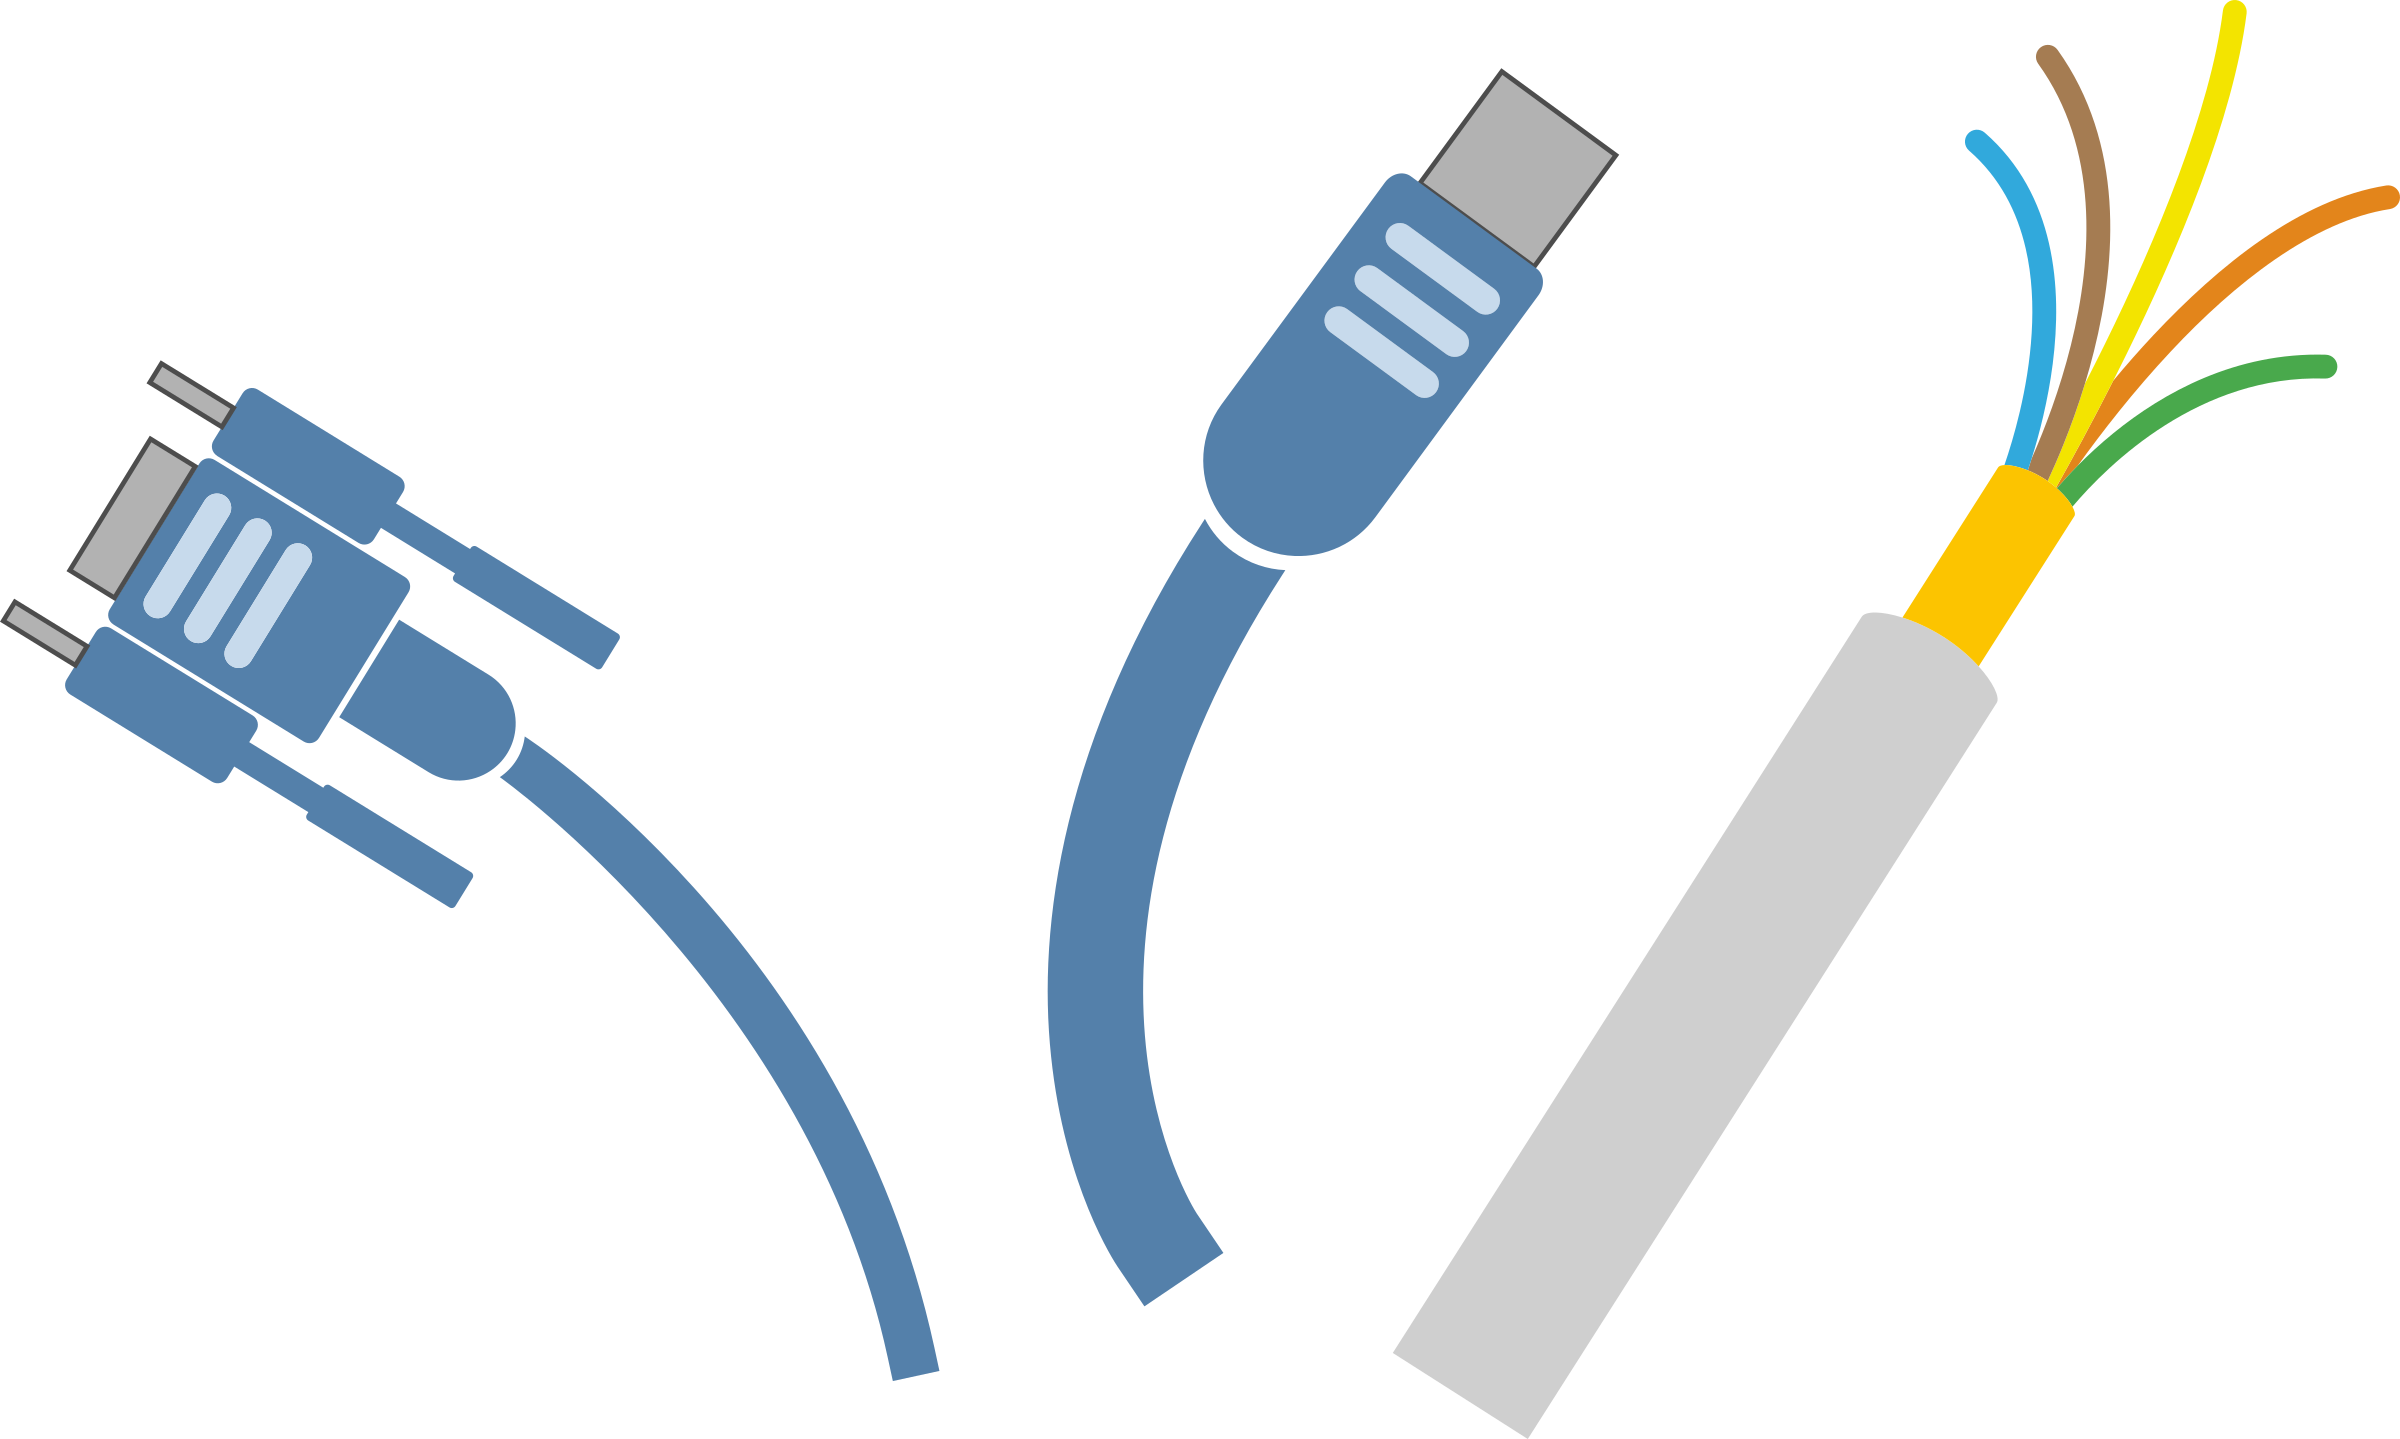 Electric transparent png mart. Electronics clipart network cable